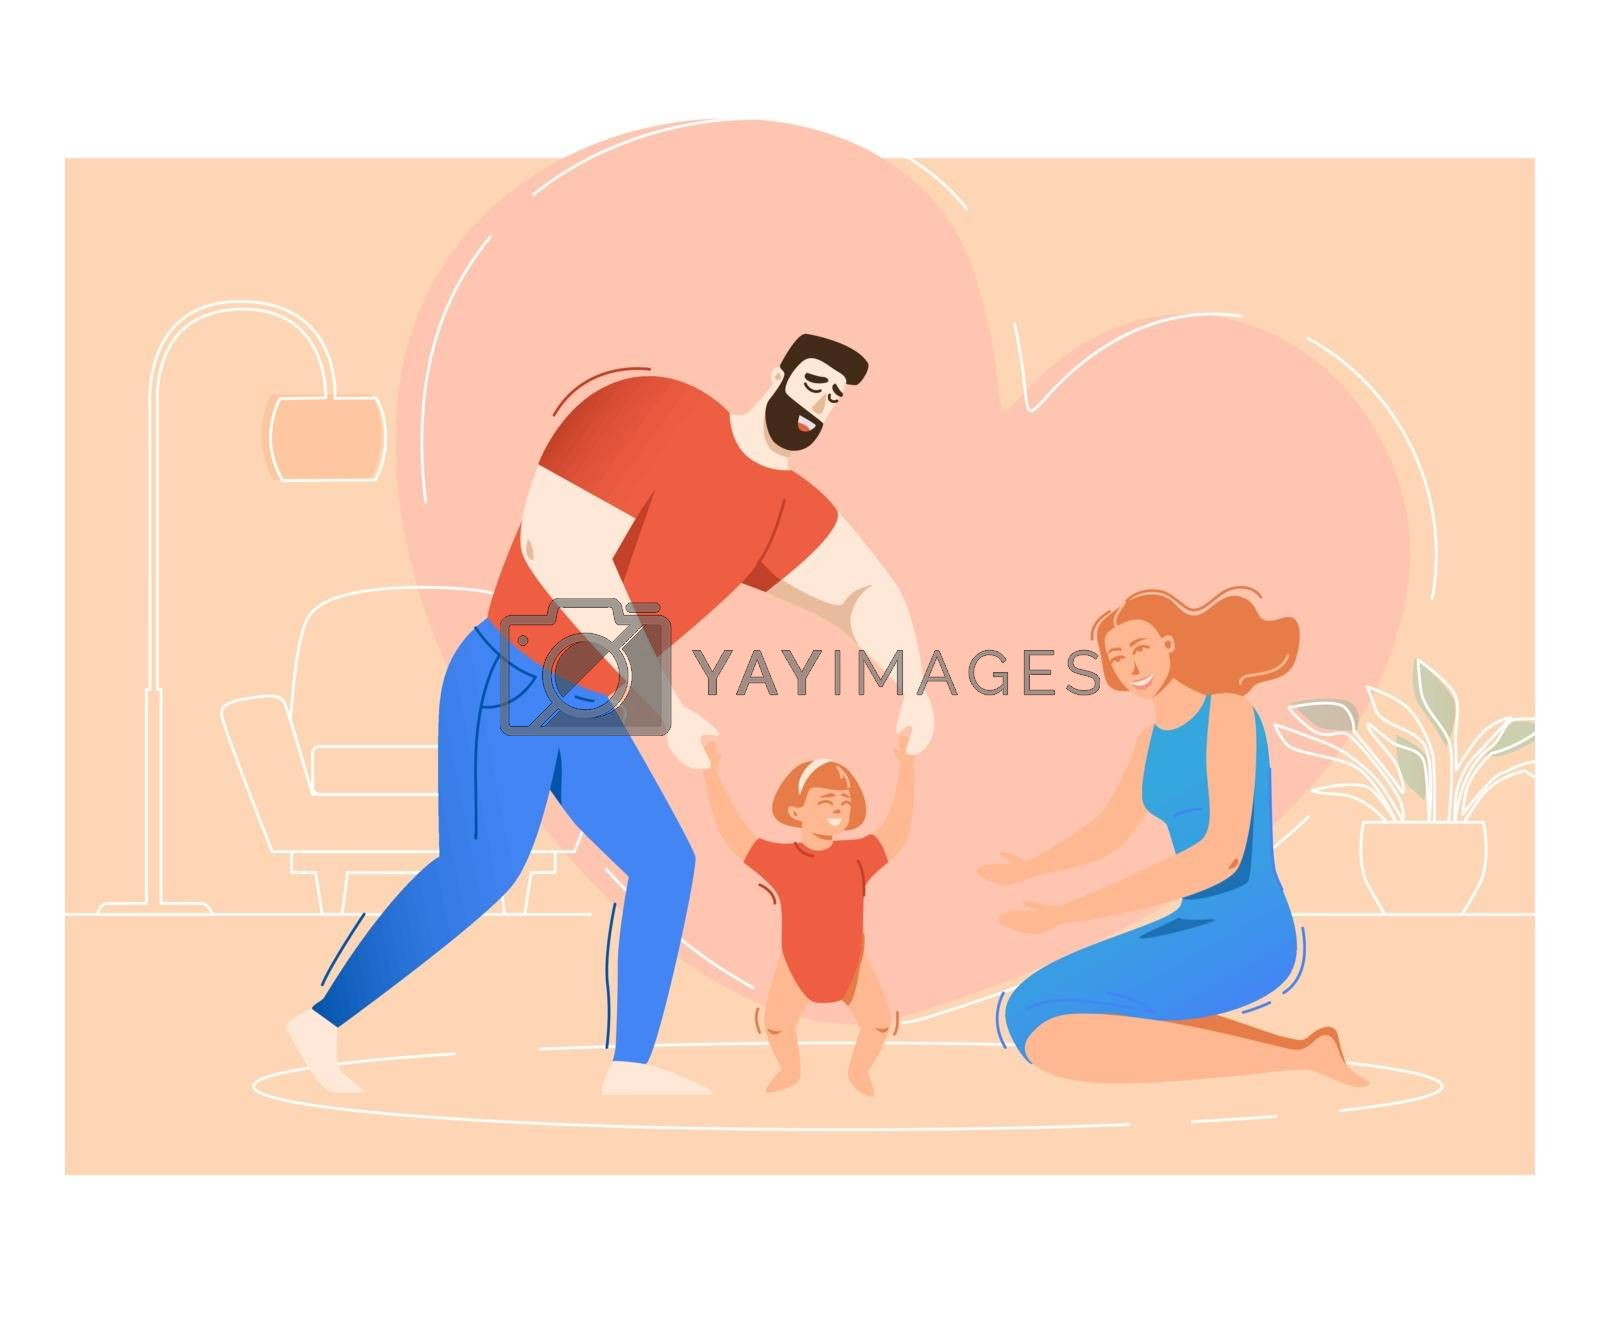 Mother and father Training daughter to walk. Parents helping toddler to make her first steps. Family concept. Vector illustration for topics like love, childhood, development